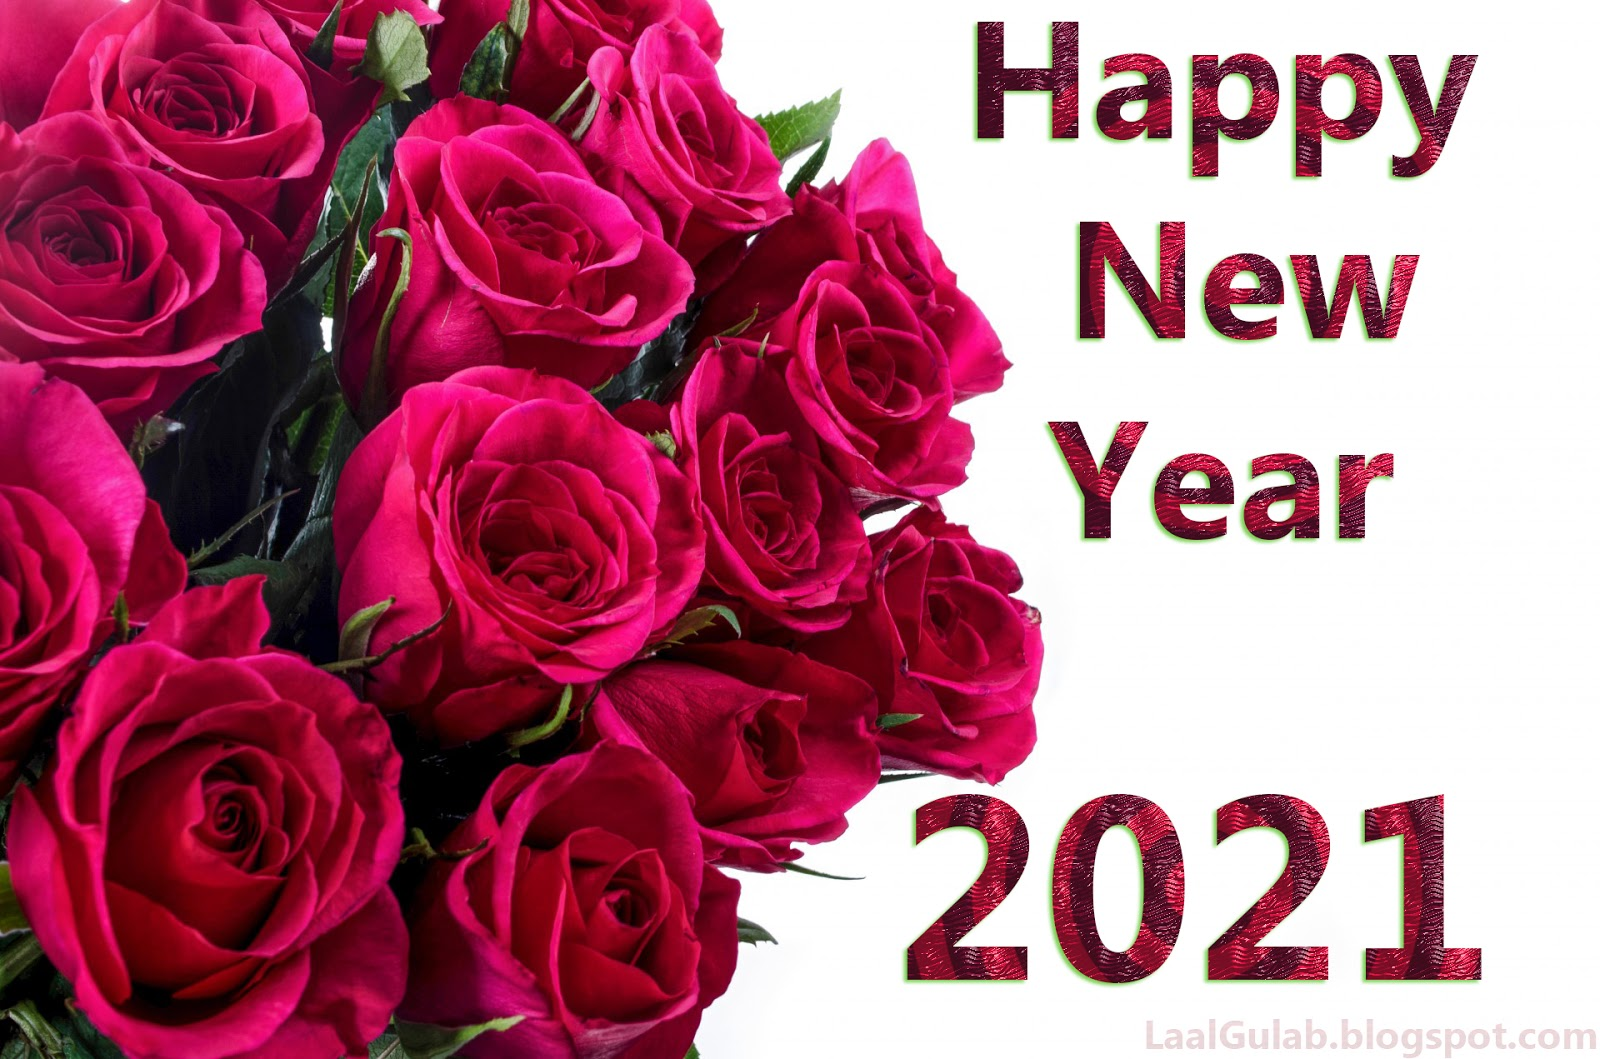 Happy New Year 2021 Wallpapers HD Images 2021 Happy New Year 2021 Wallpapers